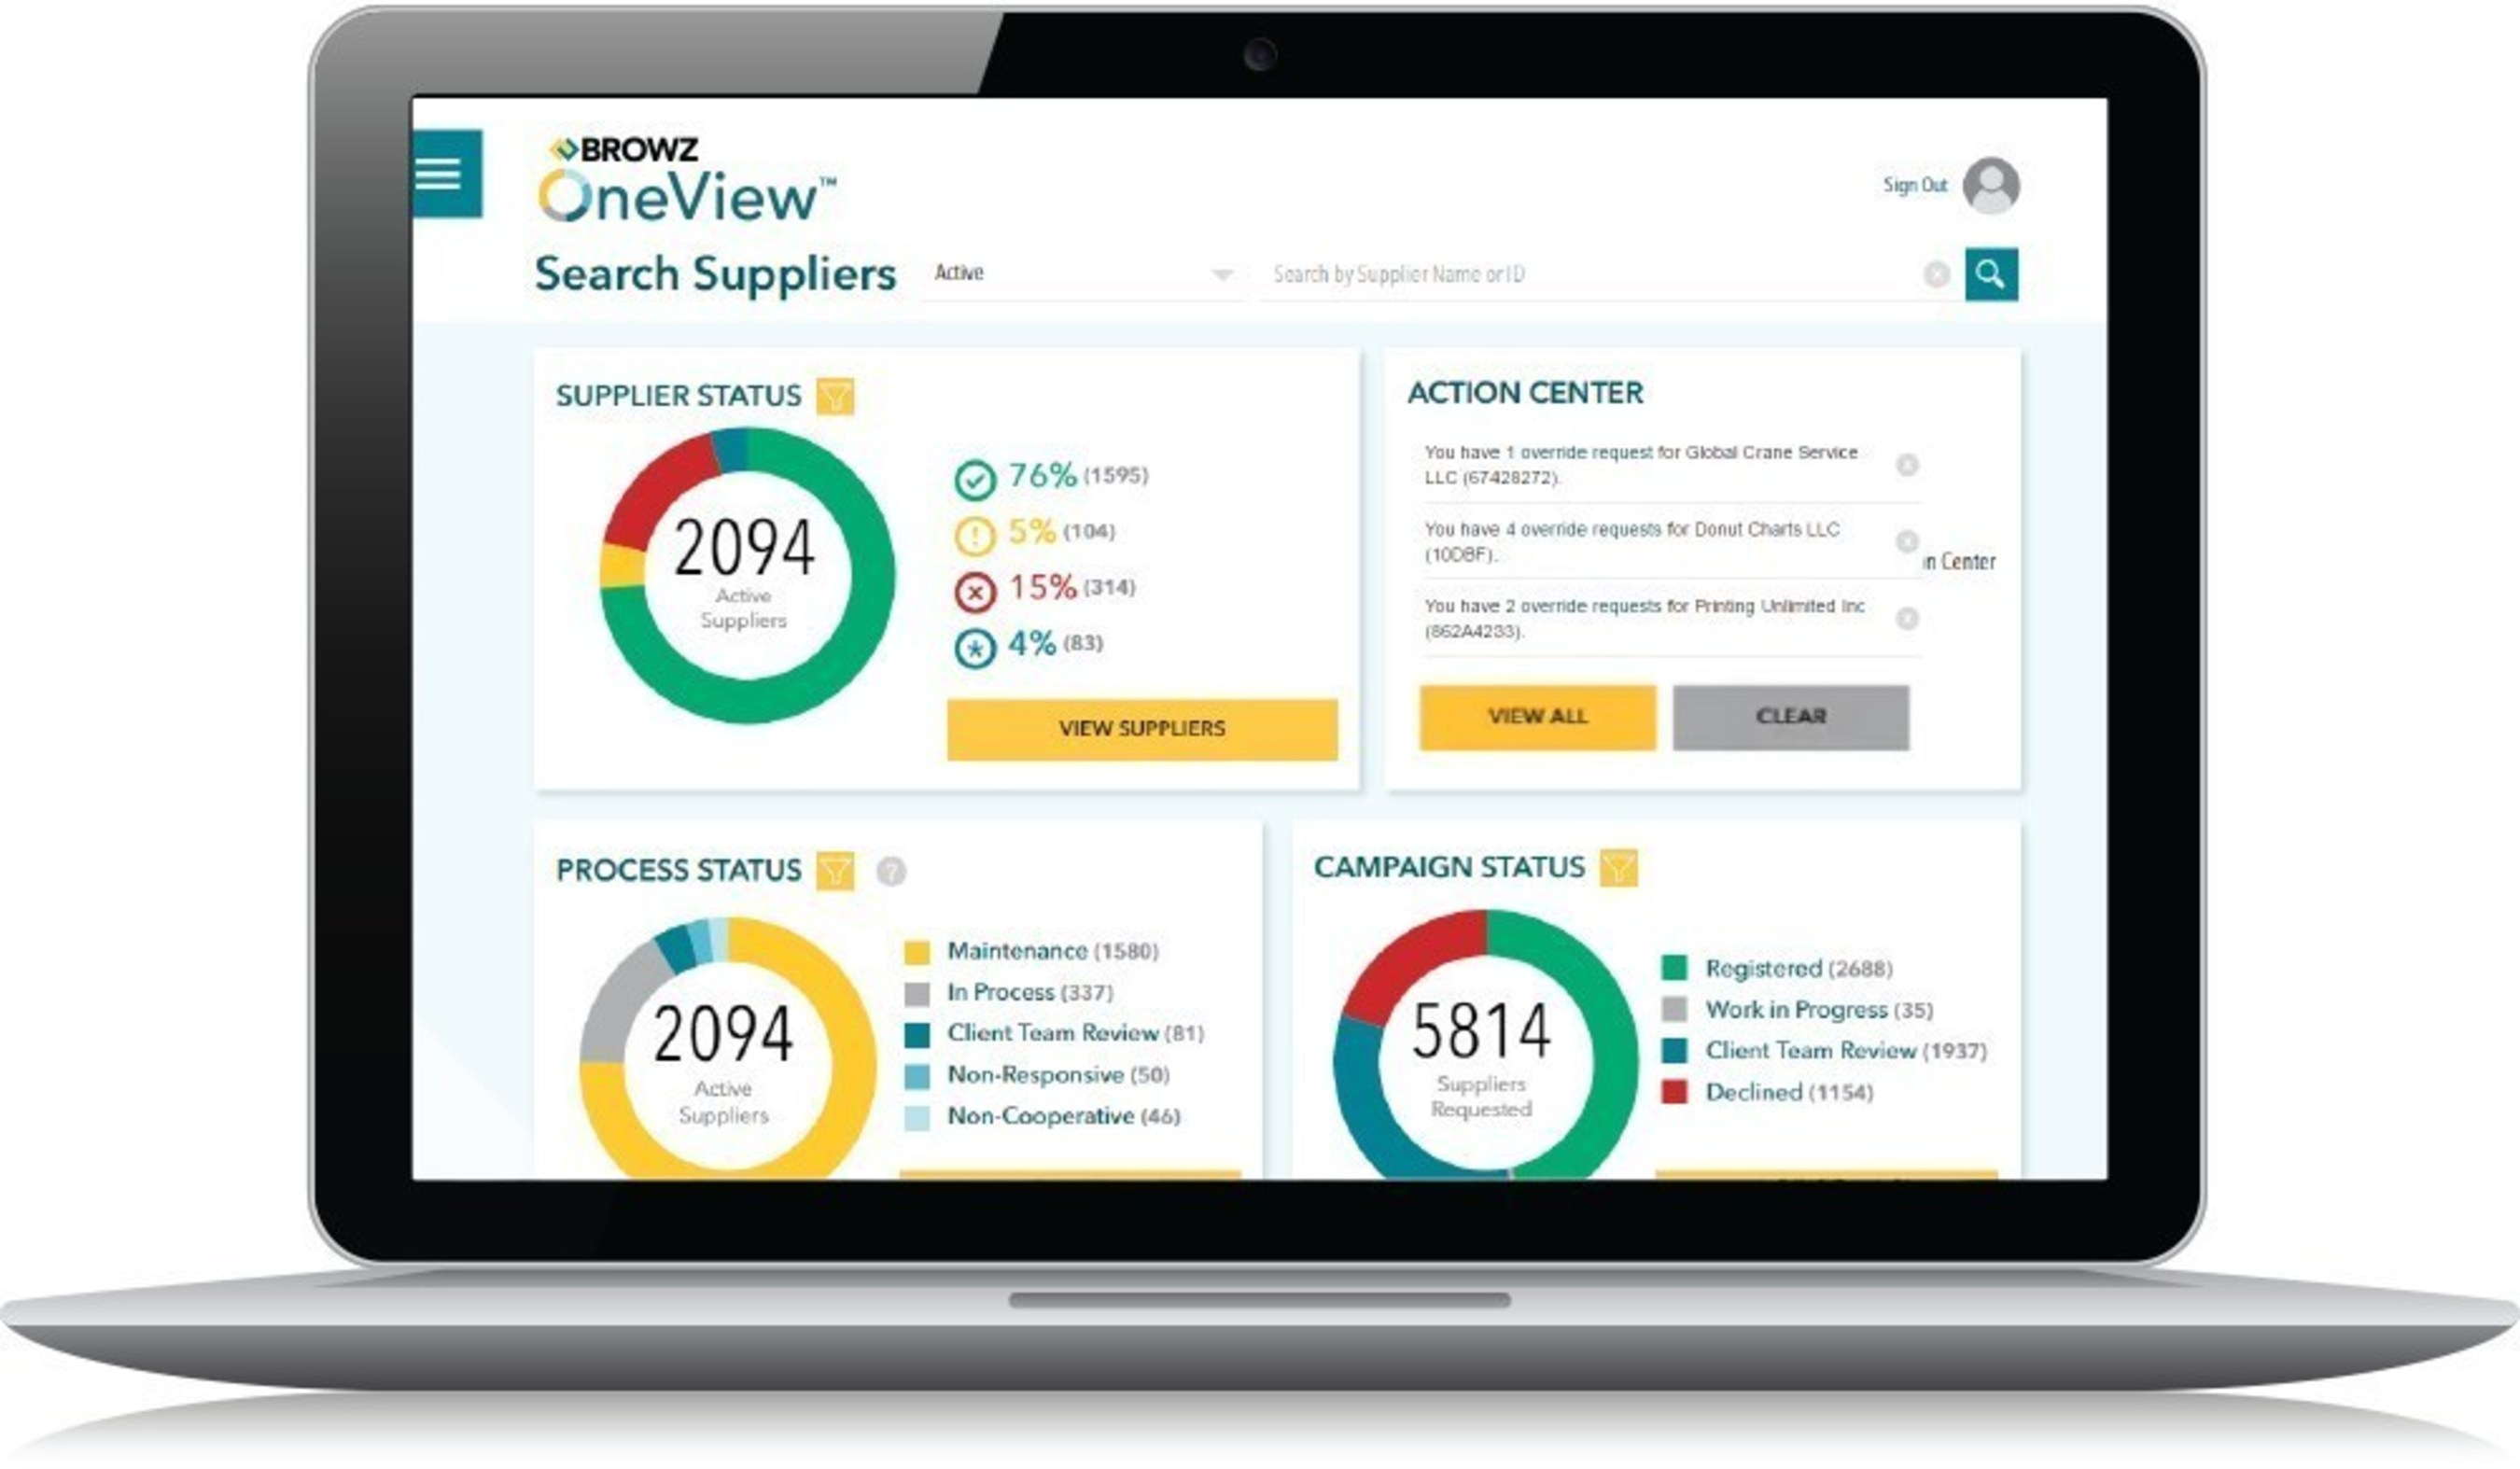 BROWZ OneView - Supplier Prequalification and Management Dashboard